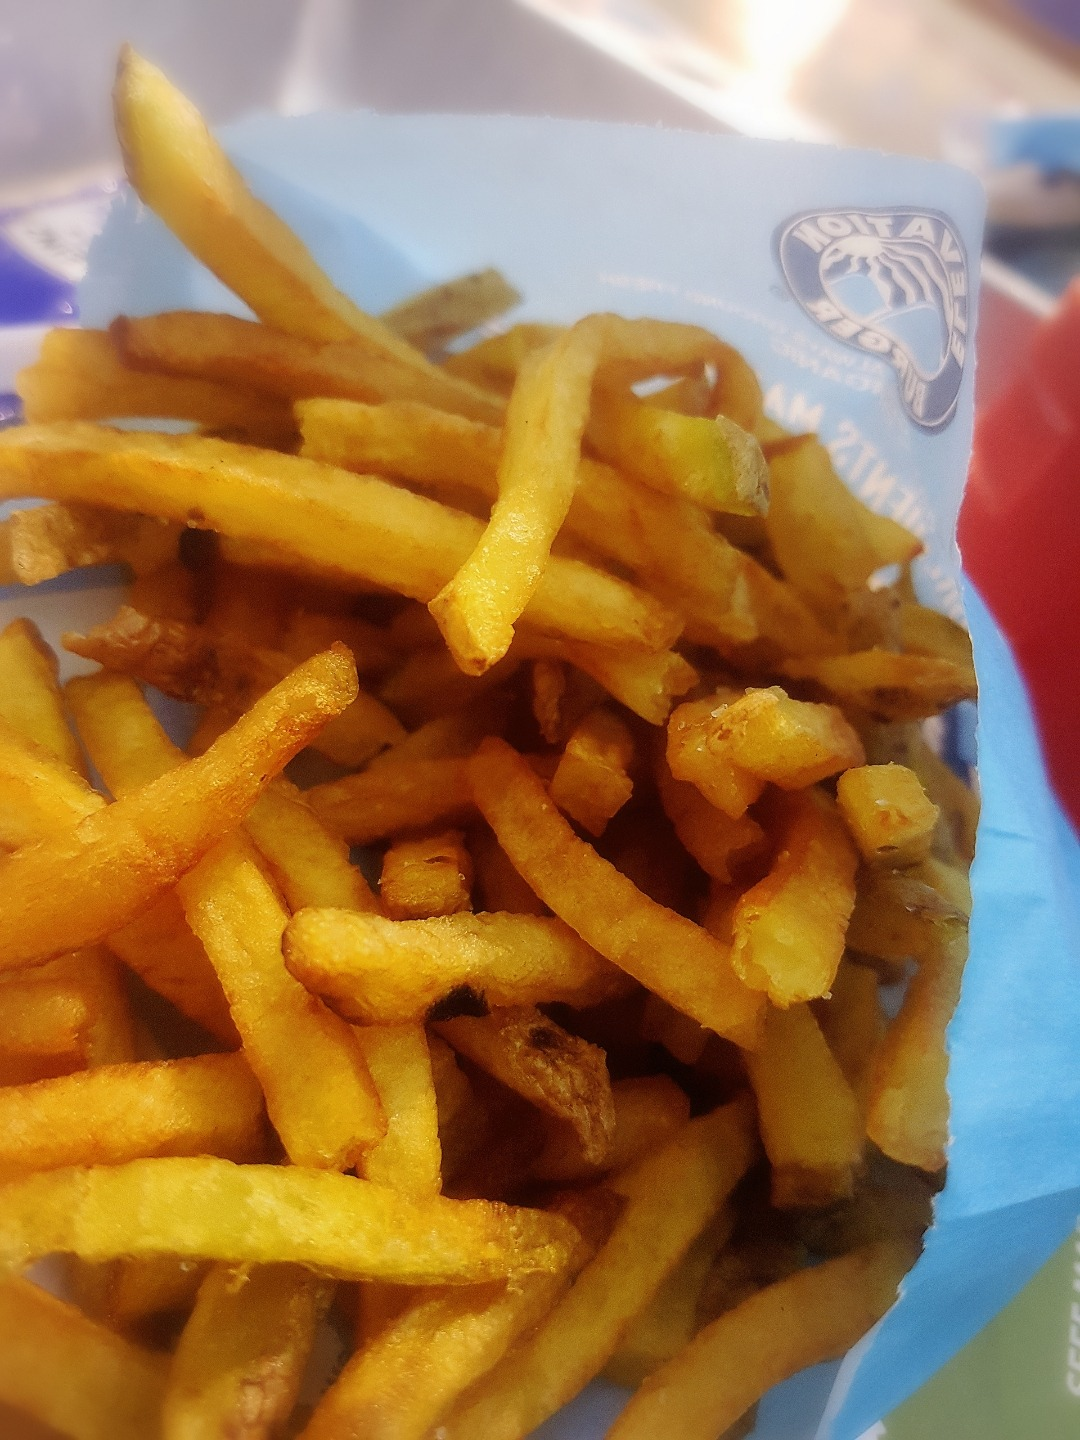 French fries @ Wafflemeister - Bahrain